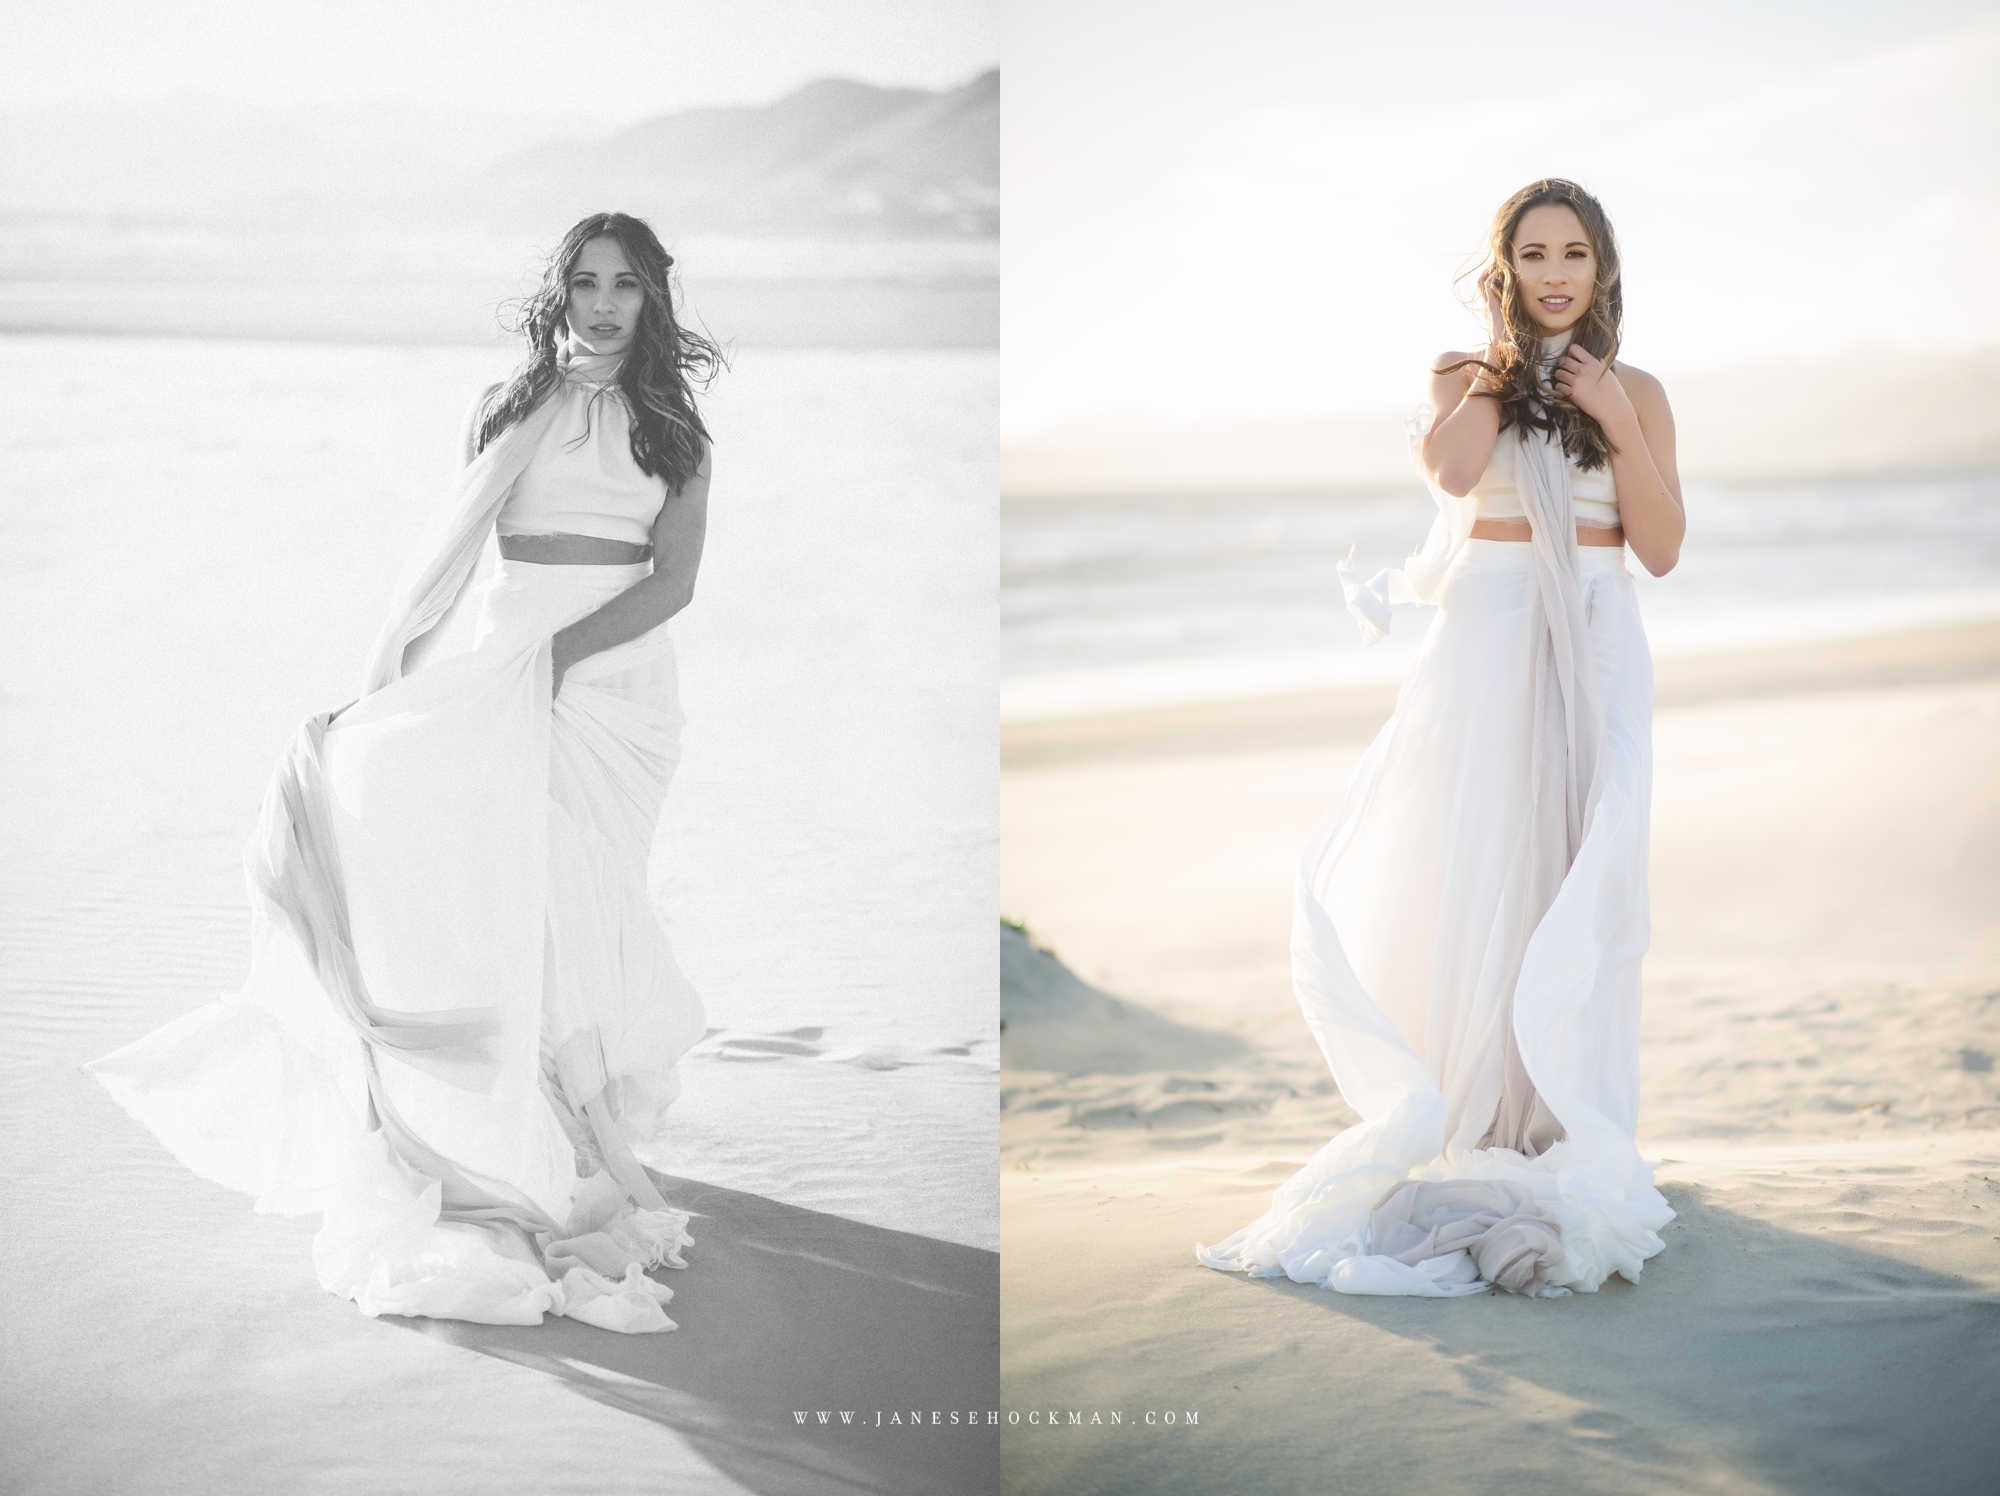 Grover Beach Sand Dunes-Janese Hockman Photography-High School Senior Portraits-Creative Shoot 2.jpg